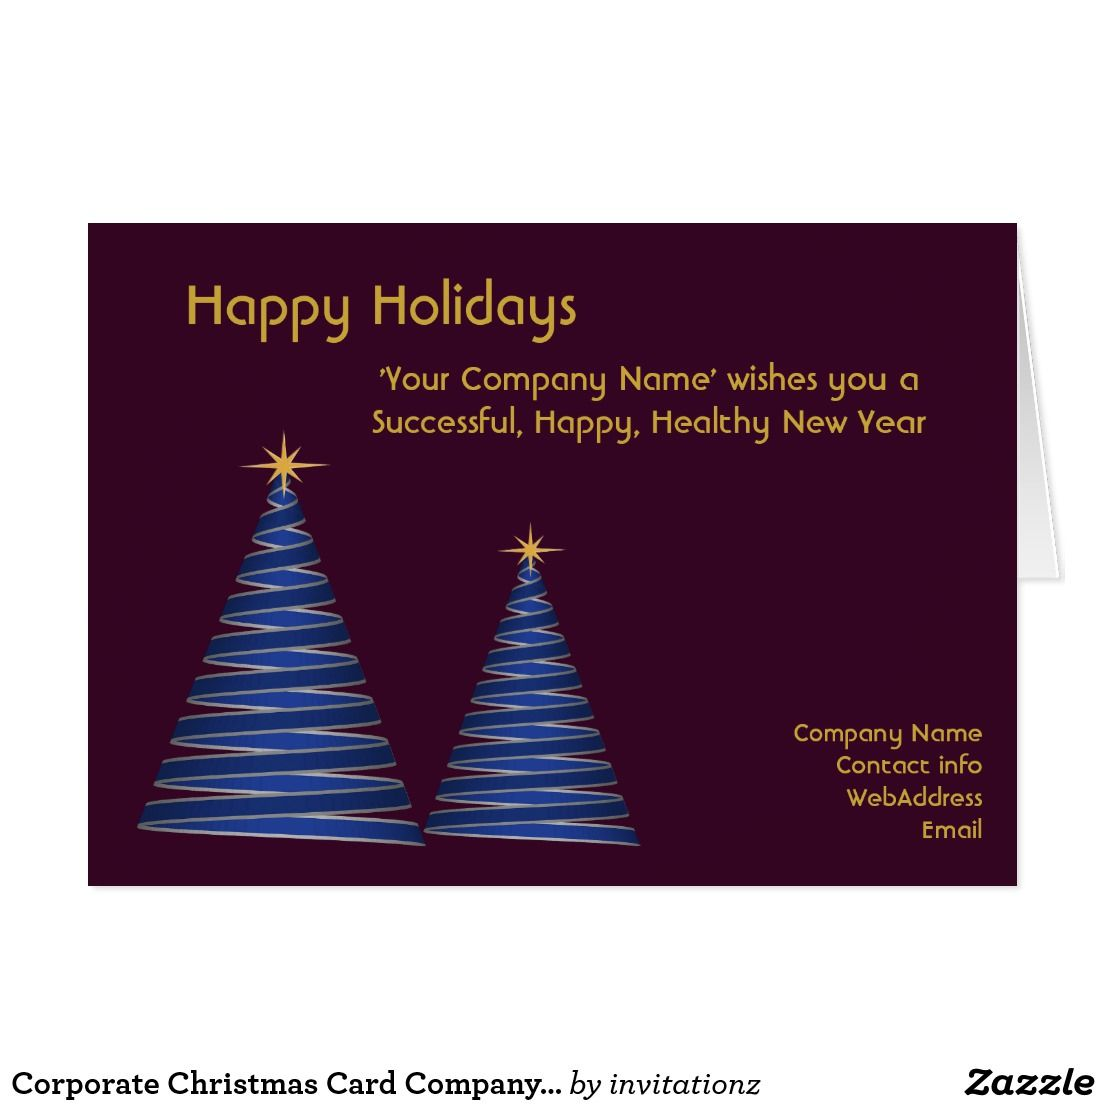 ORDER EARLY!! Custom Corporate Christmas Card Company Business Cards ...